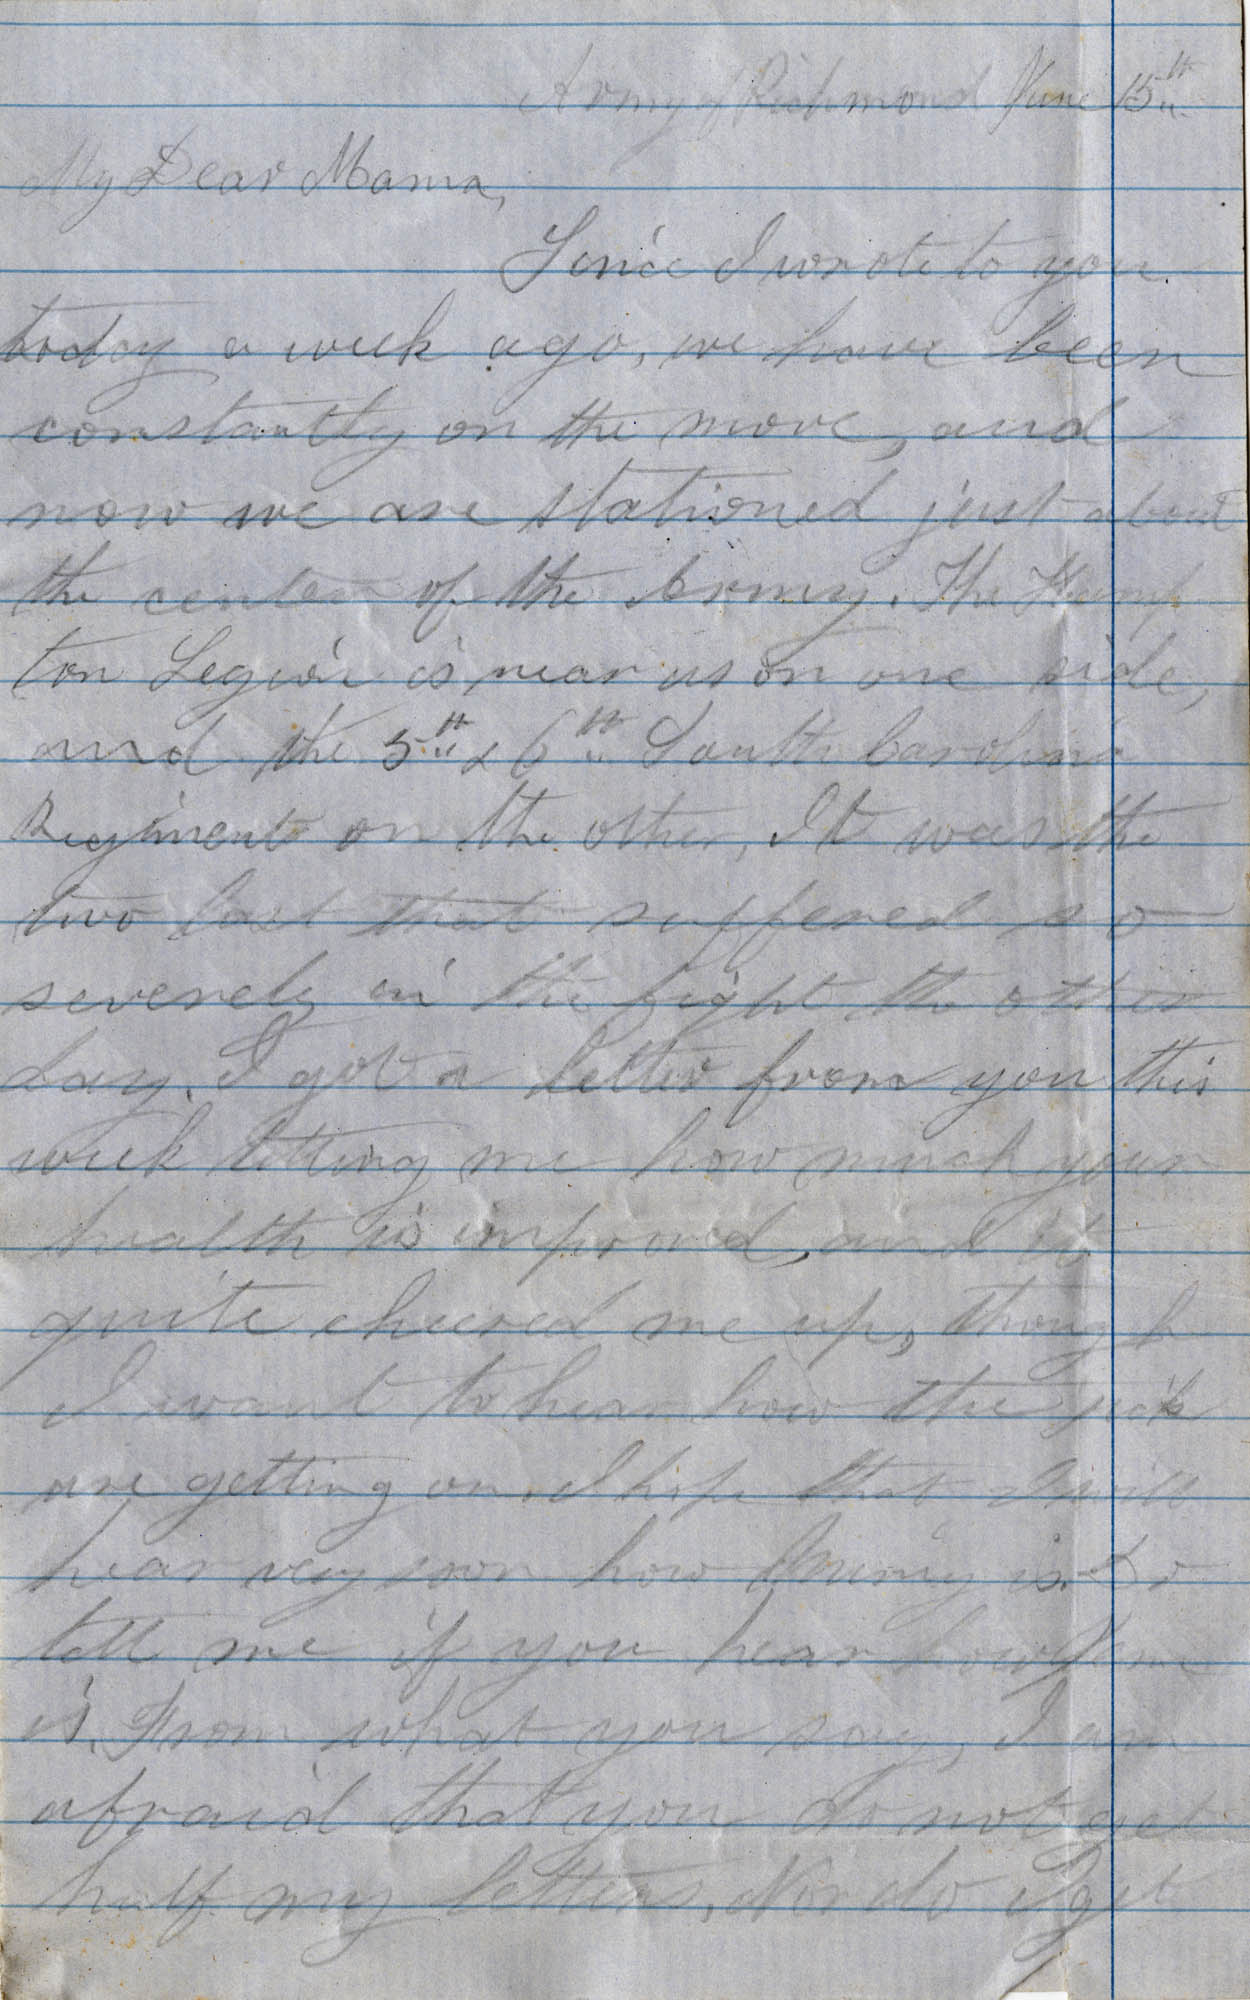 056. Willis Keith to Anna Bella Keith -- June 15, 1862?.